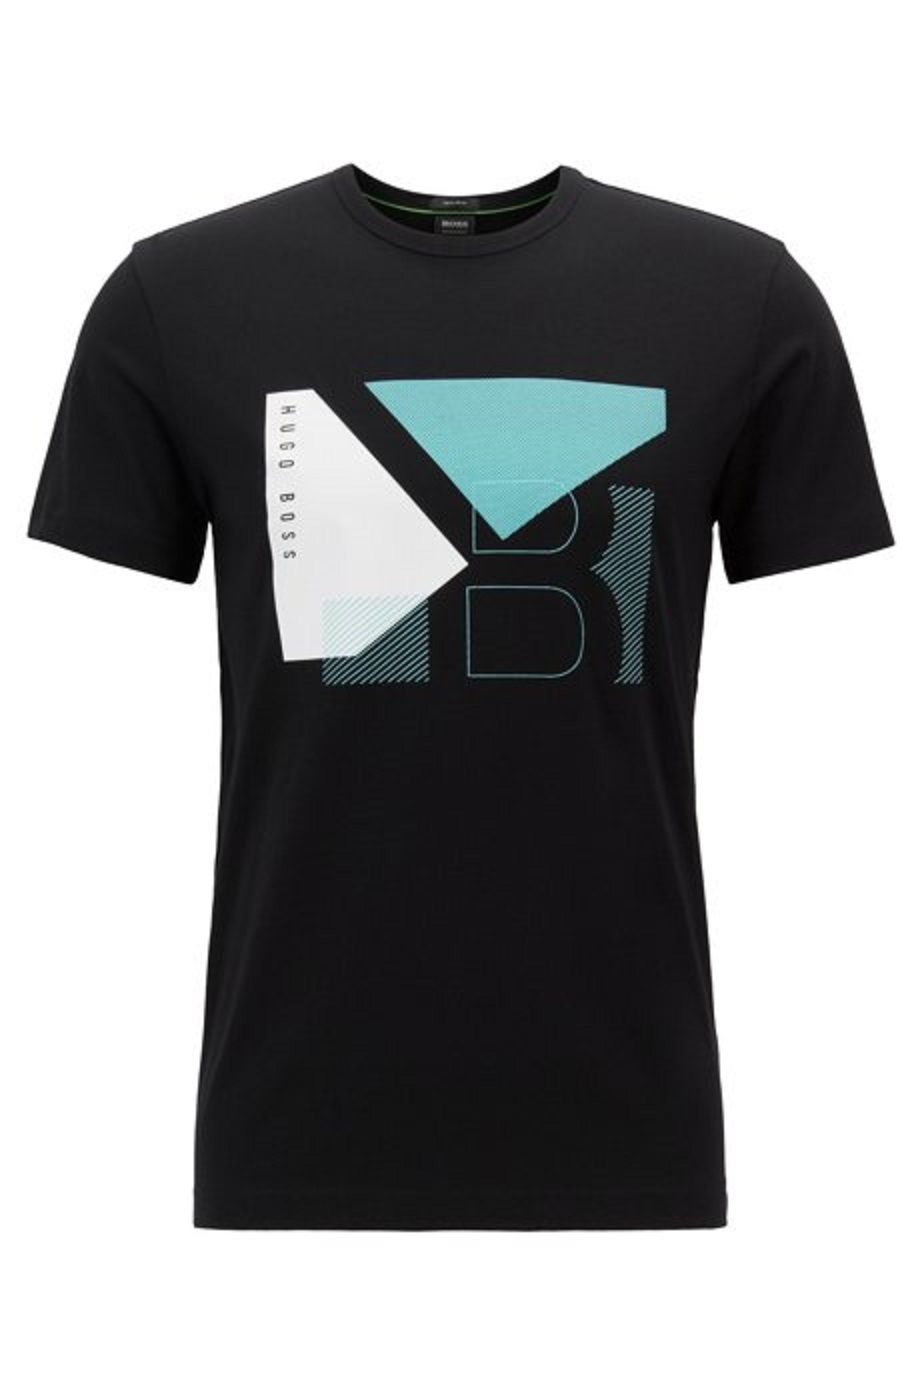 HUGO BOSS T-shirt regular fit in cotone grafica a blocchi BLACK Tee 2 50404402